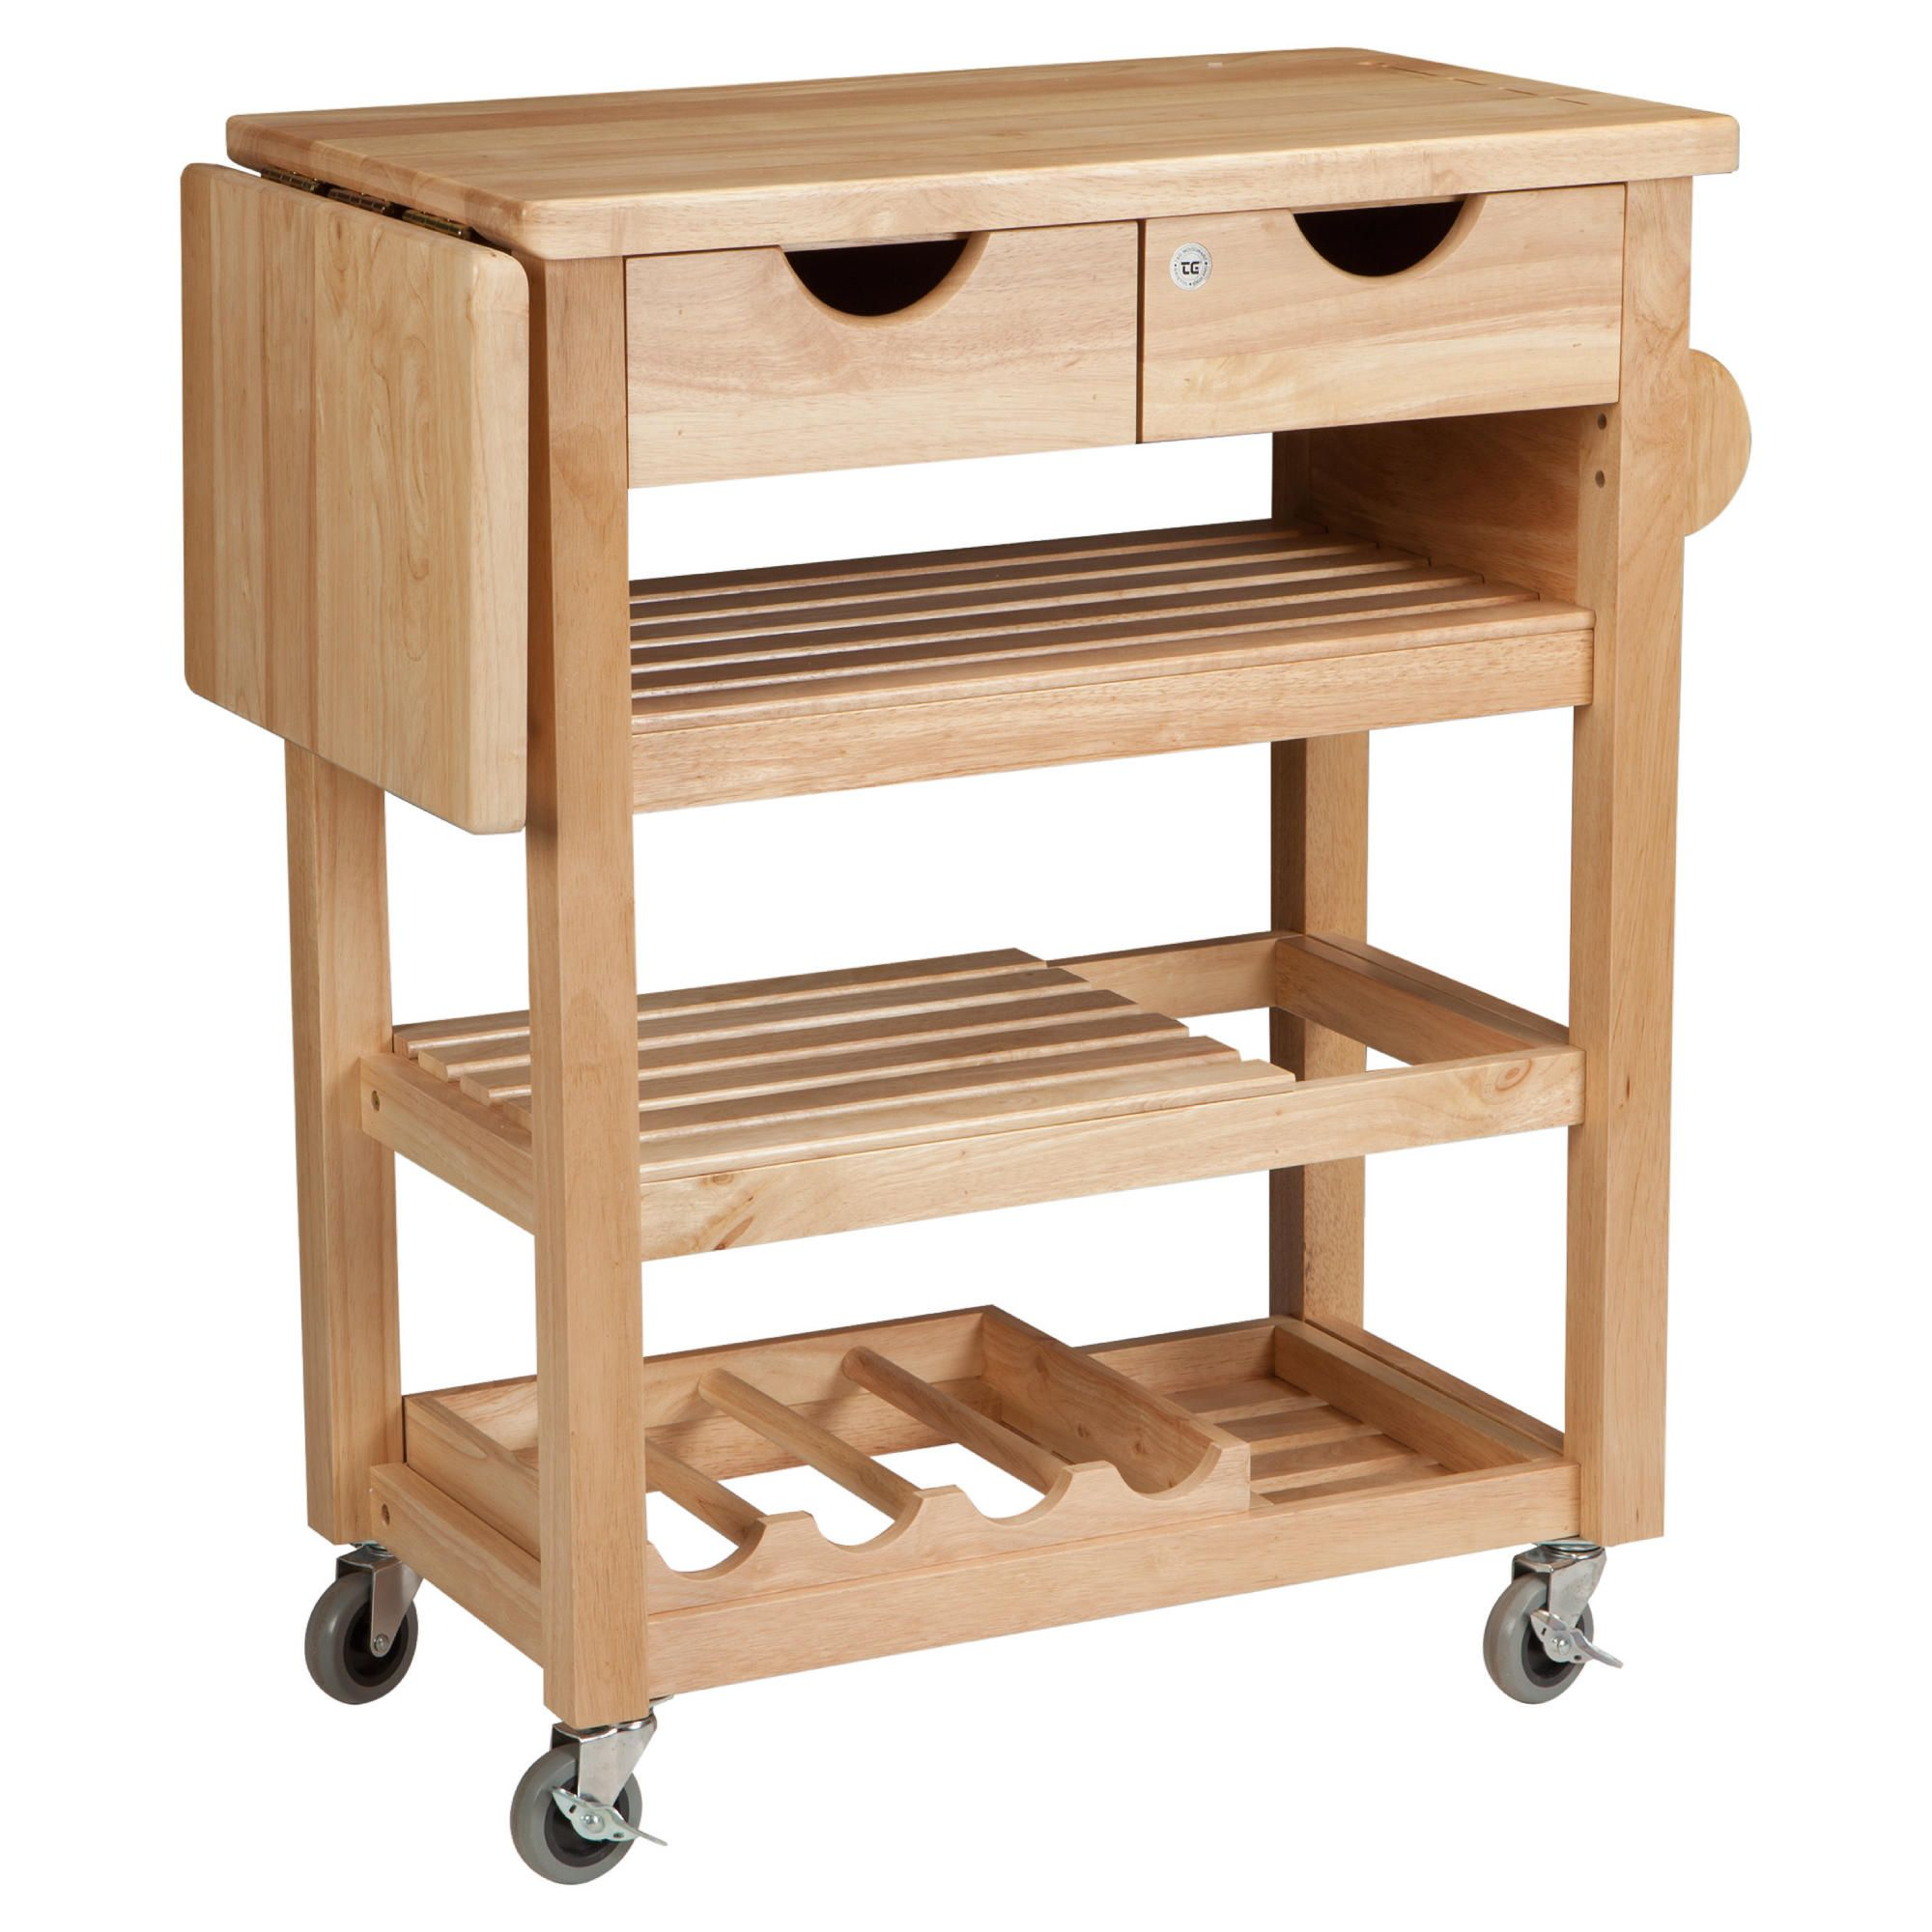 T&G Woodware Ltd Viva Trolley in Natural Hevea at Tesco Direct